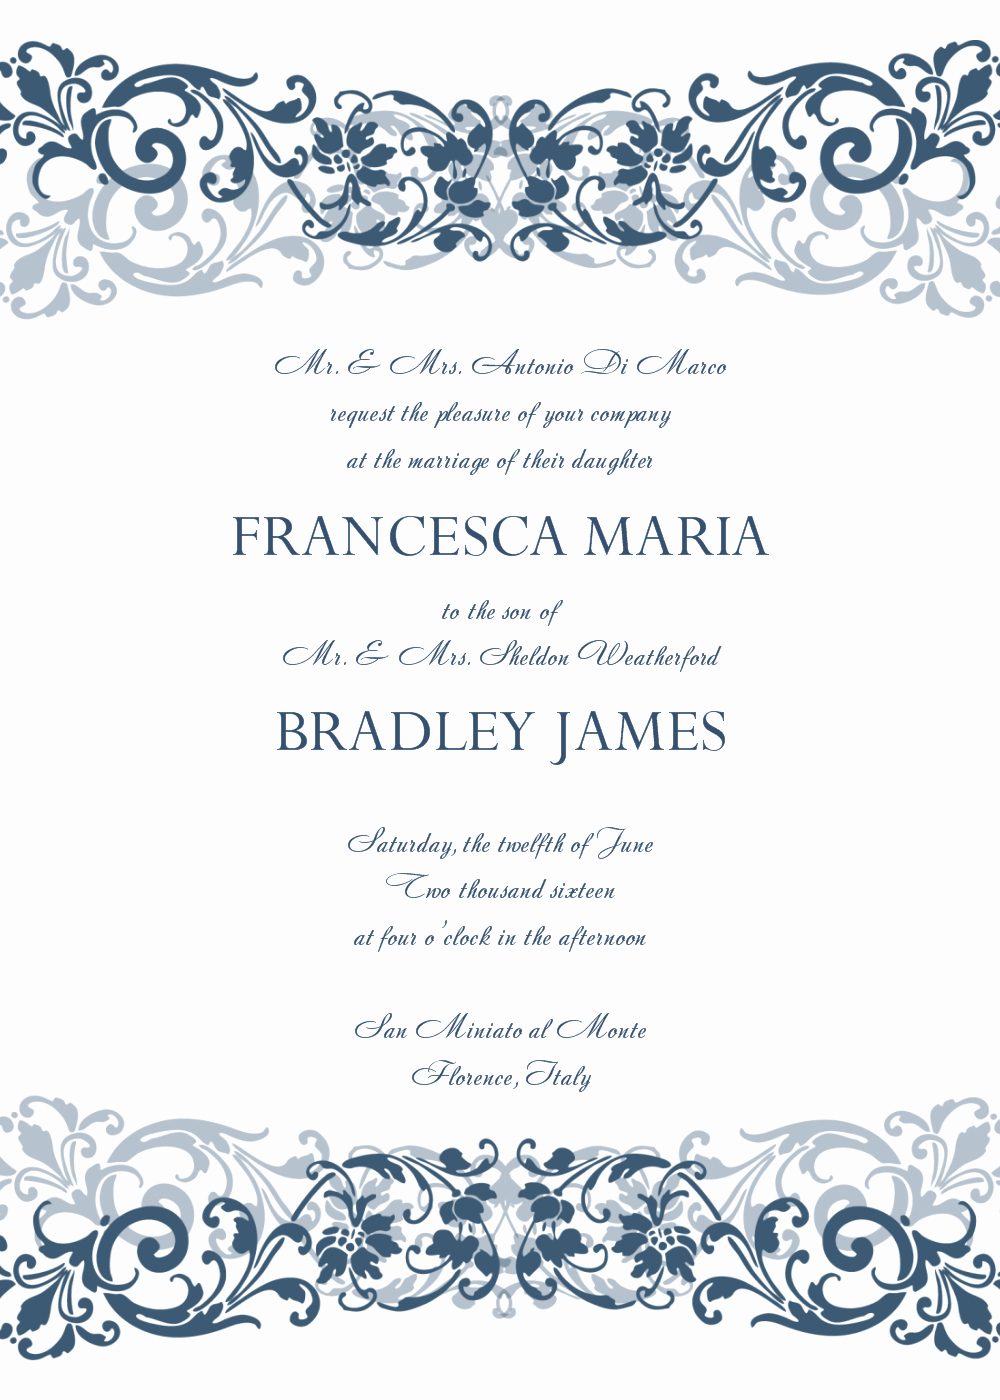 Free Invitation Templates for Word Luxury 8 Free Wedding Invitation Templates Excel Pdf formats